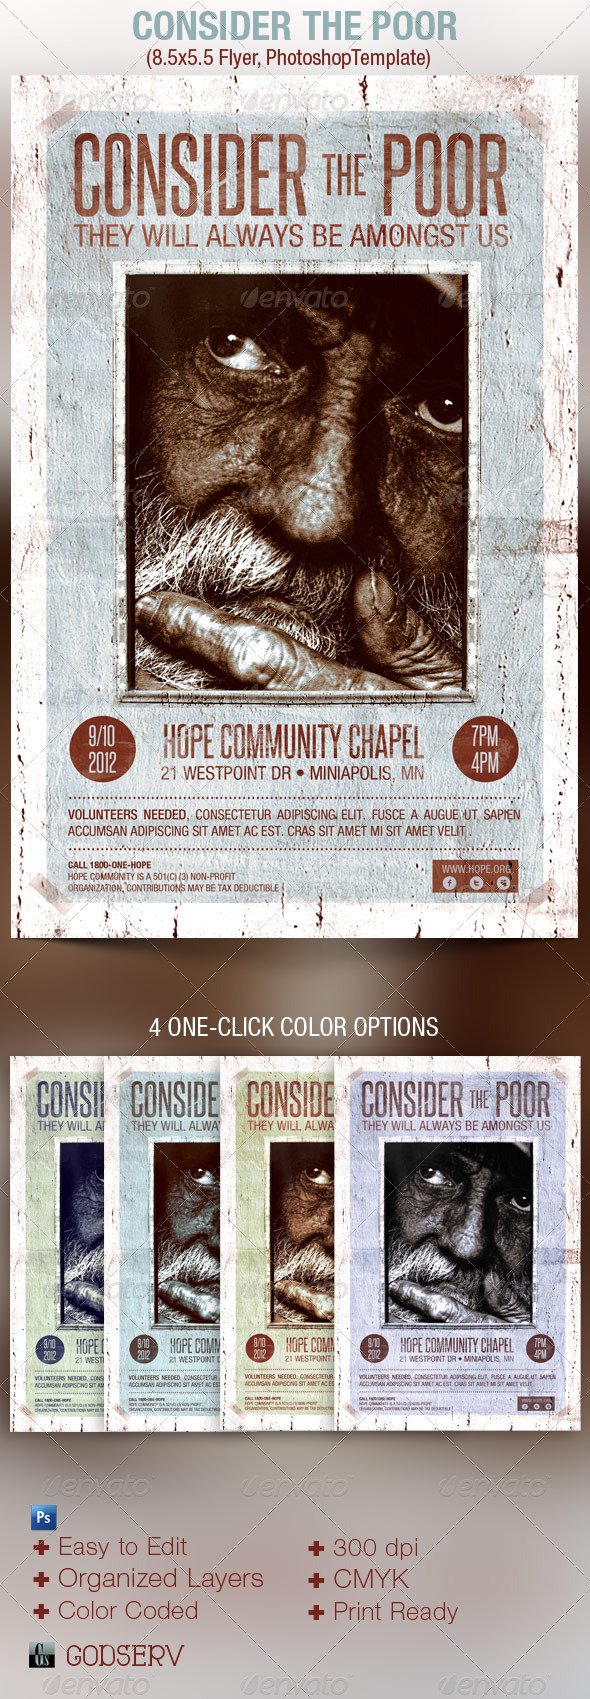 Consider Poor Charity Flyer Template - Church Flyers